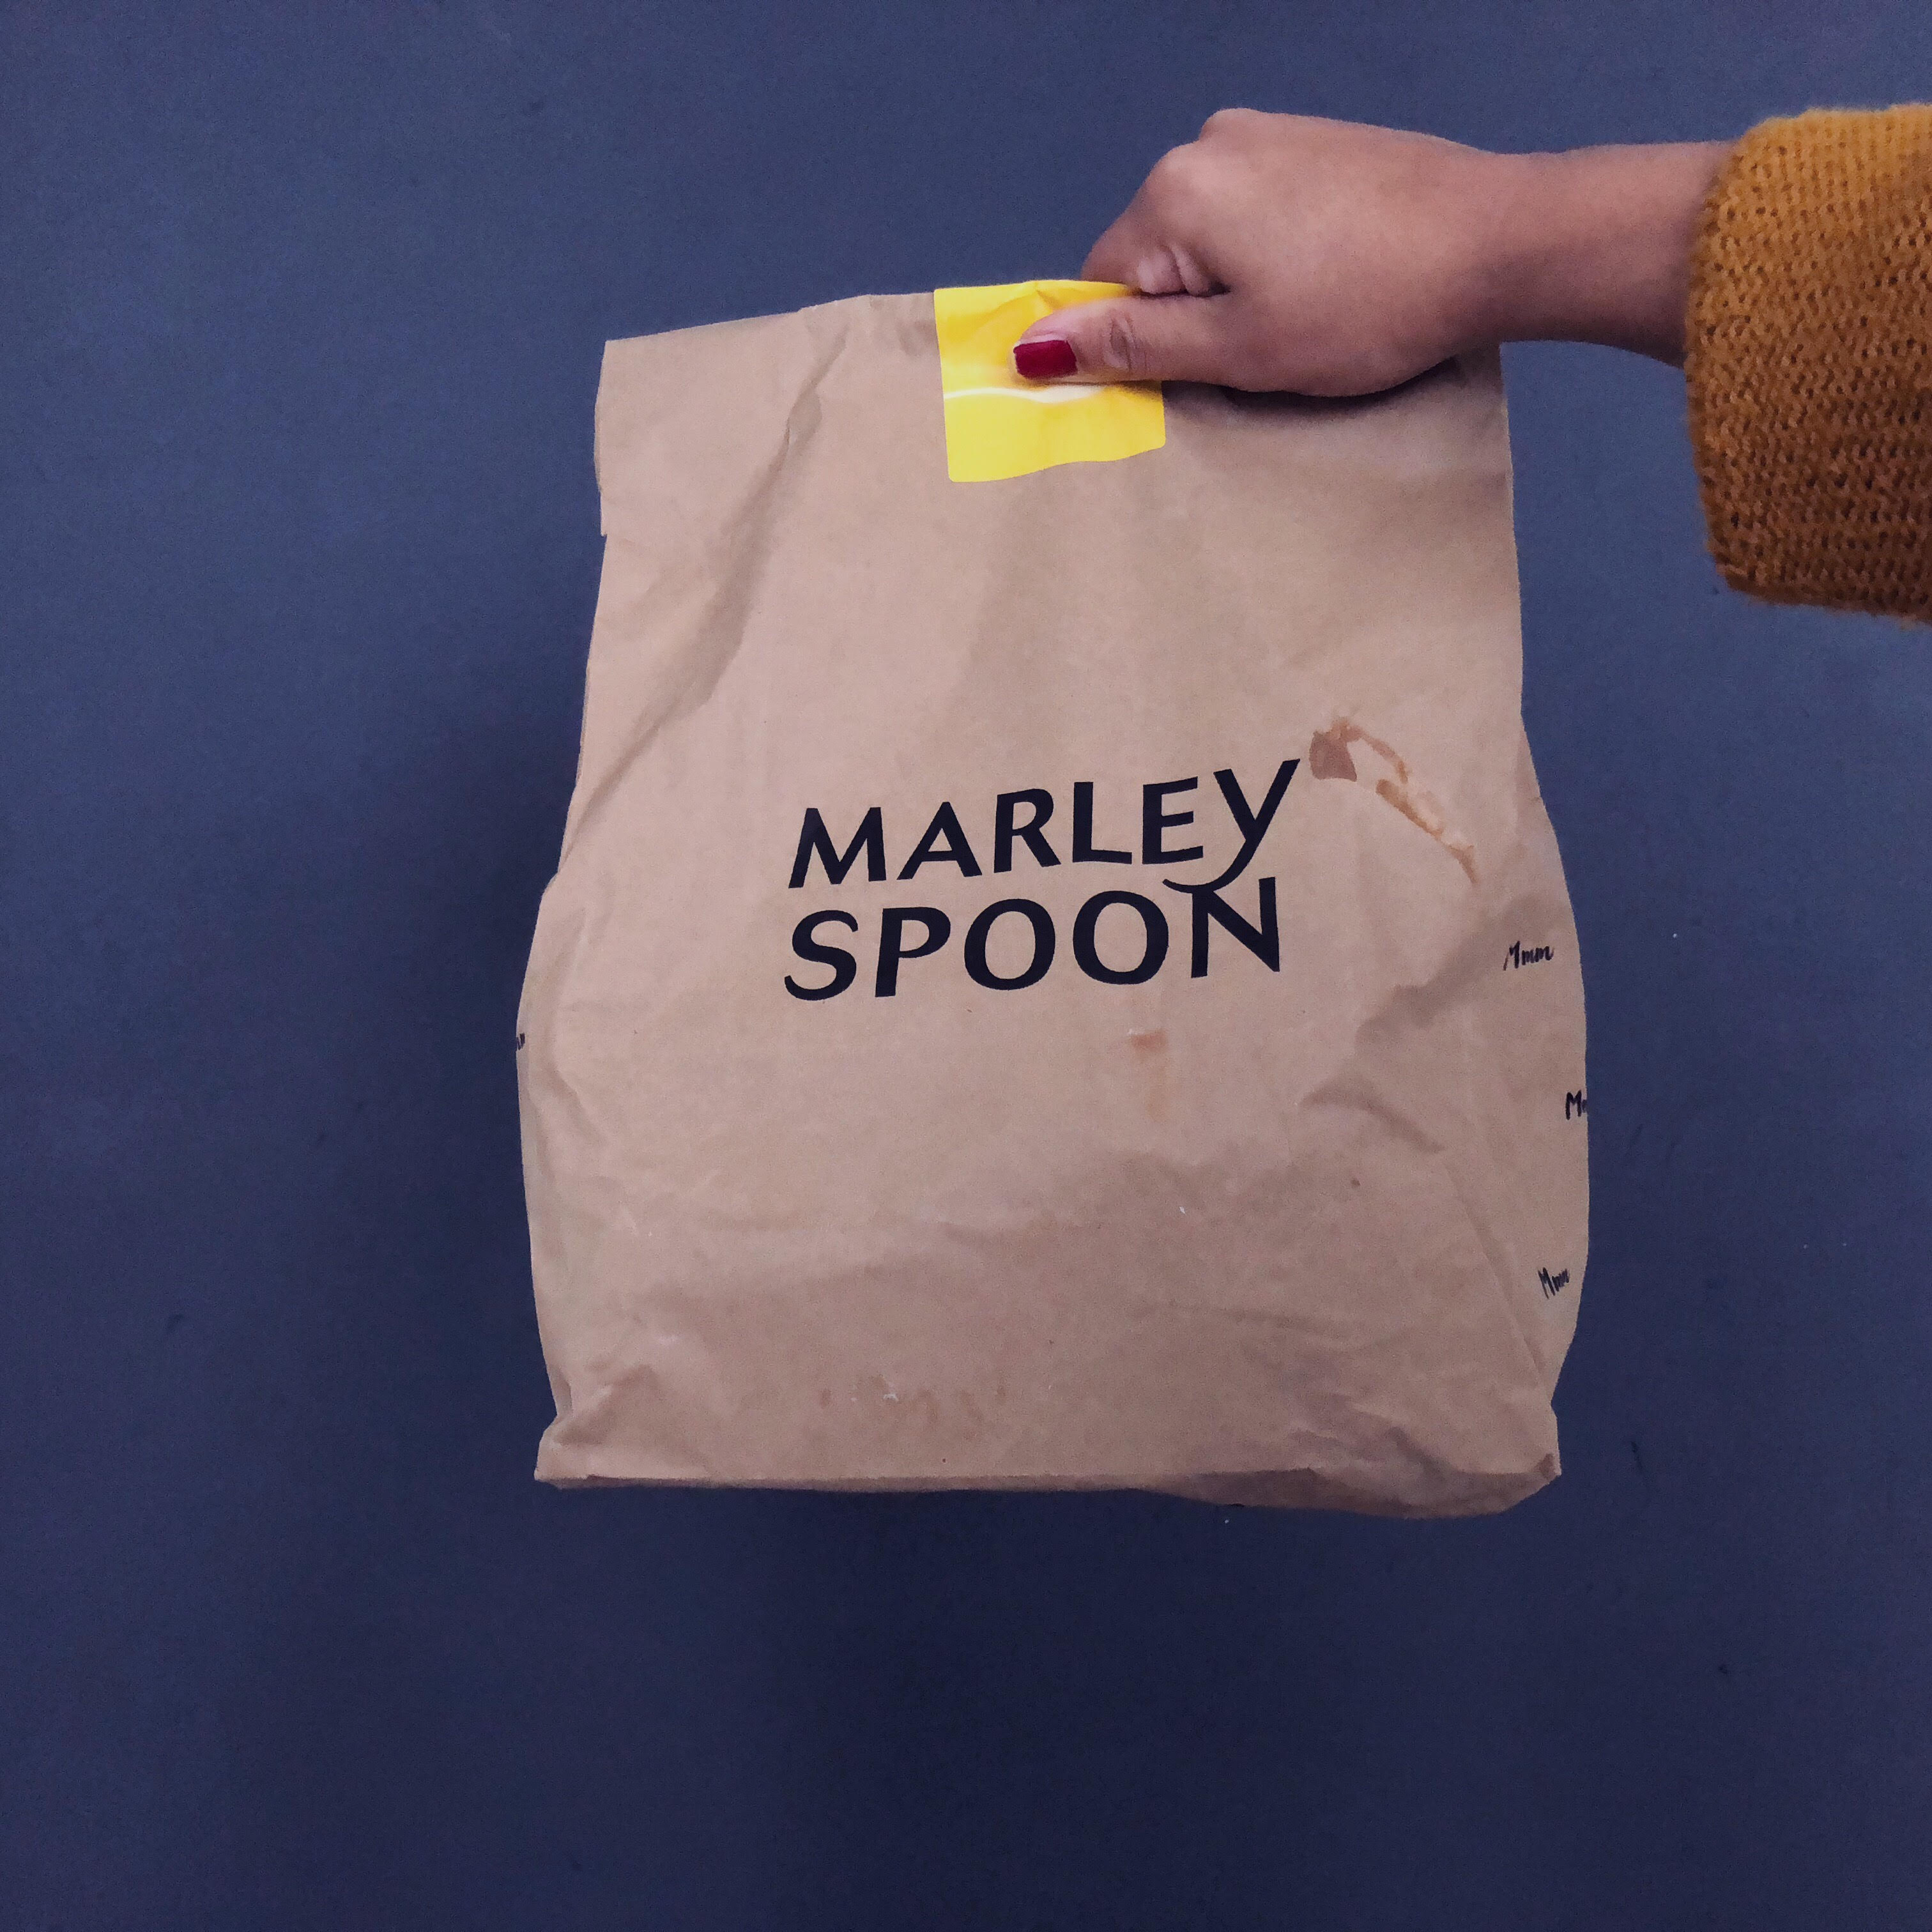 Marley Spoon by Marta Steward food delivery service and food box subscription. Get a discount and $25 off your first order.